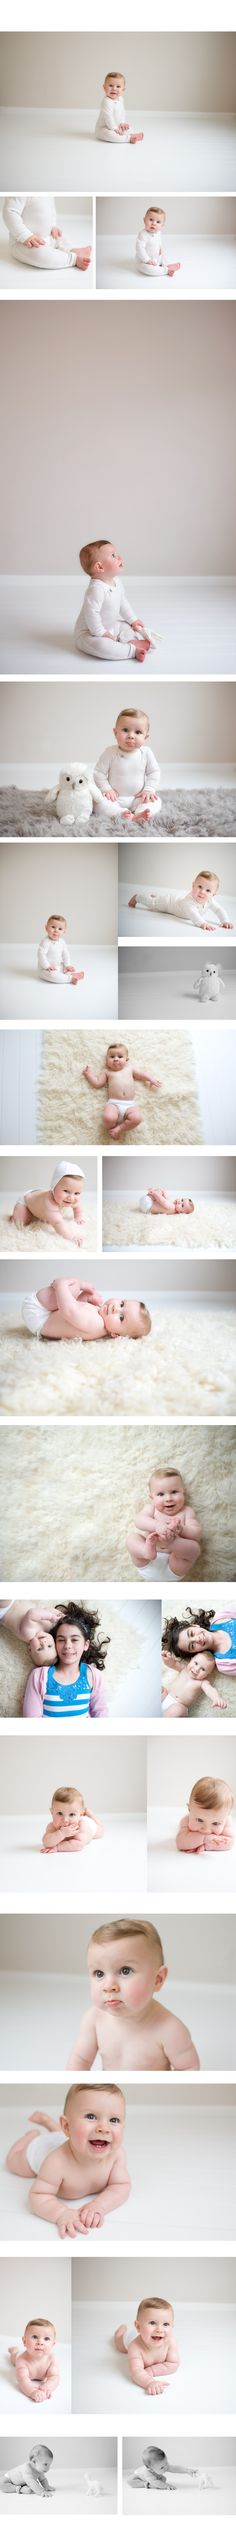 Babies | Lane Proffitt Photography - Part 4